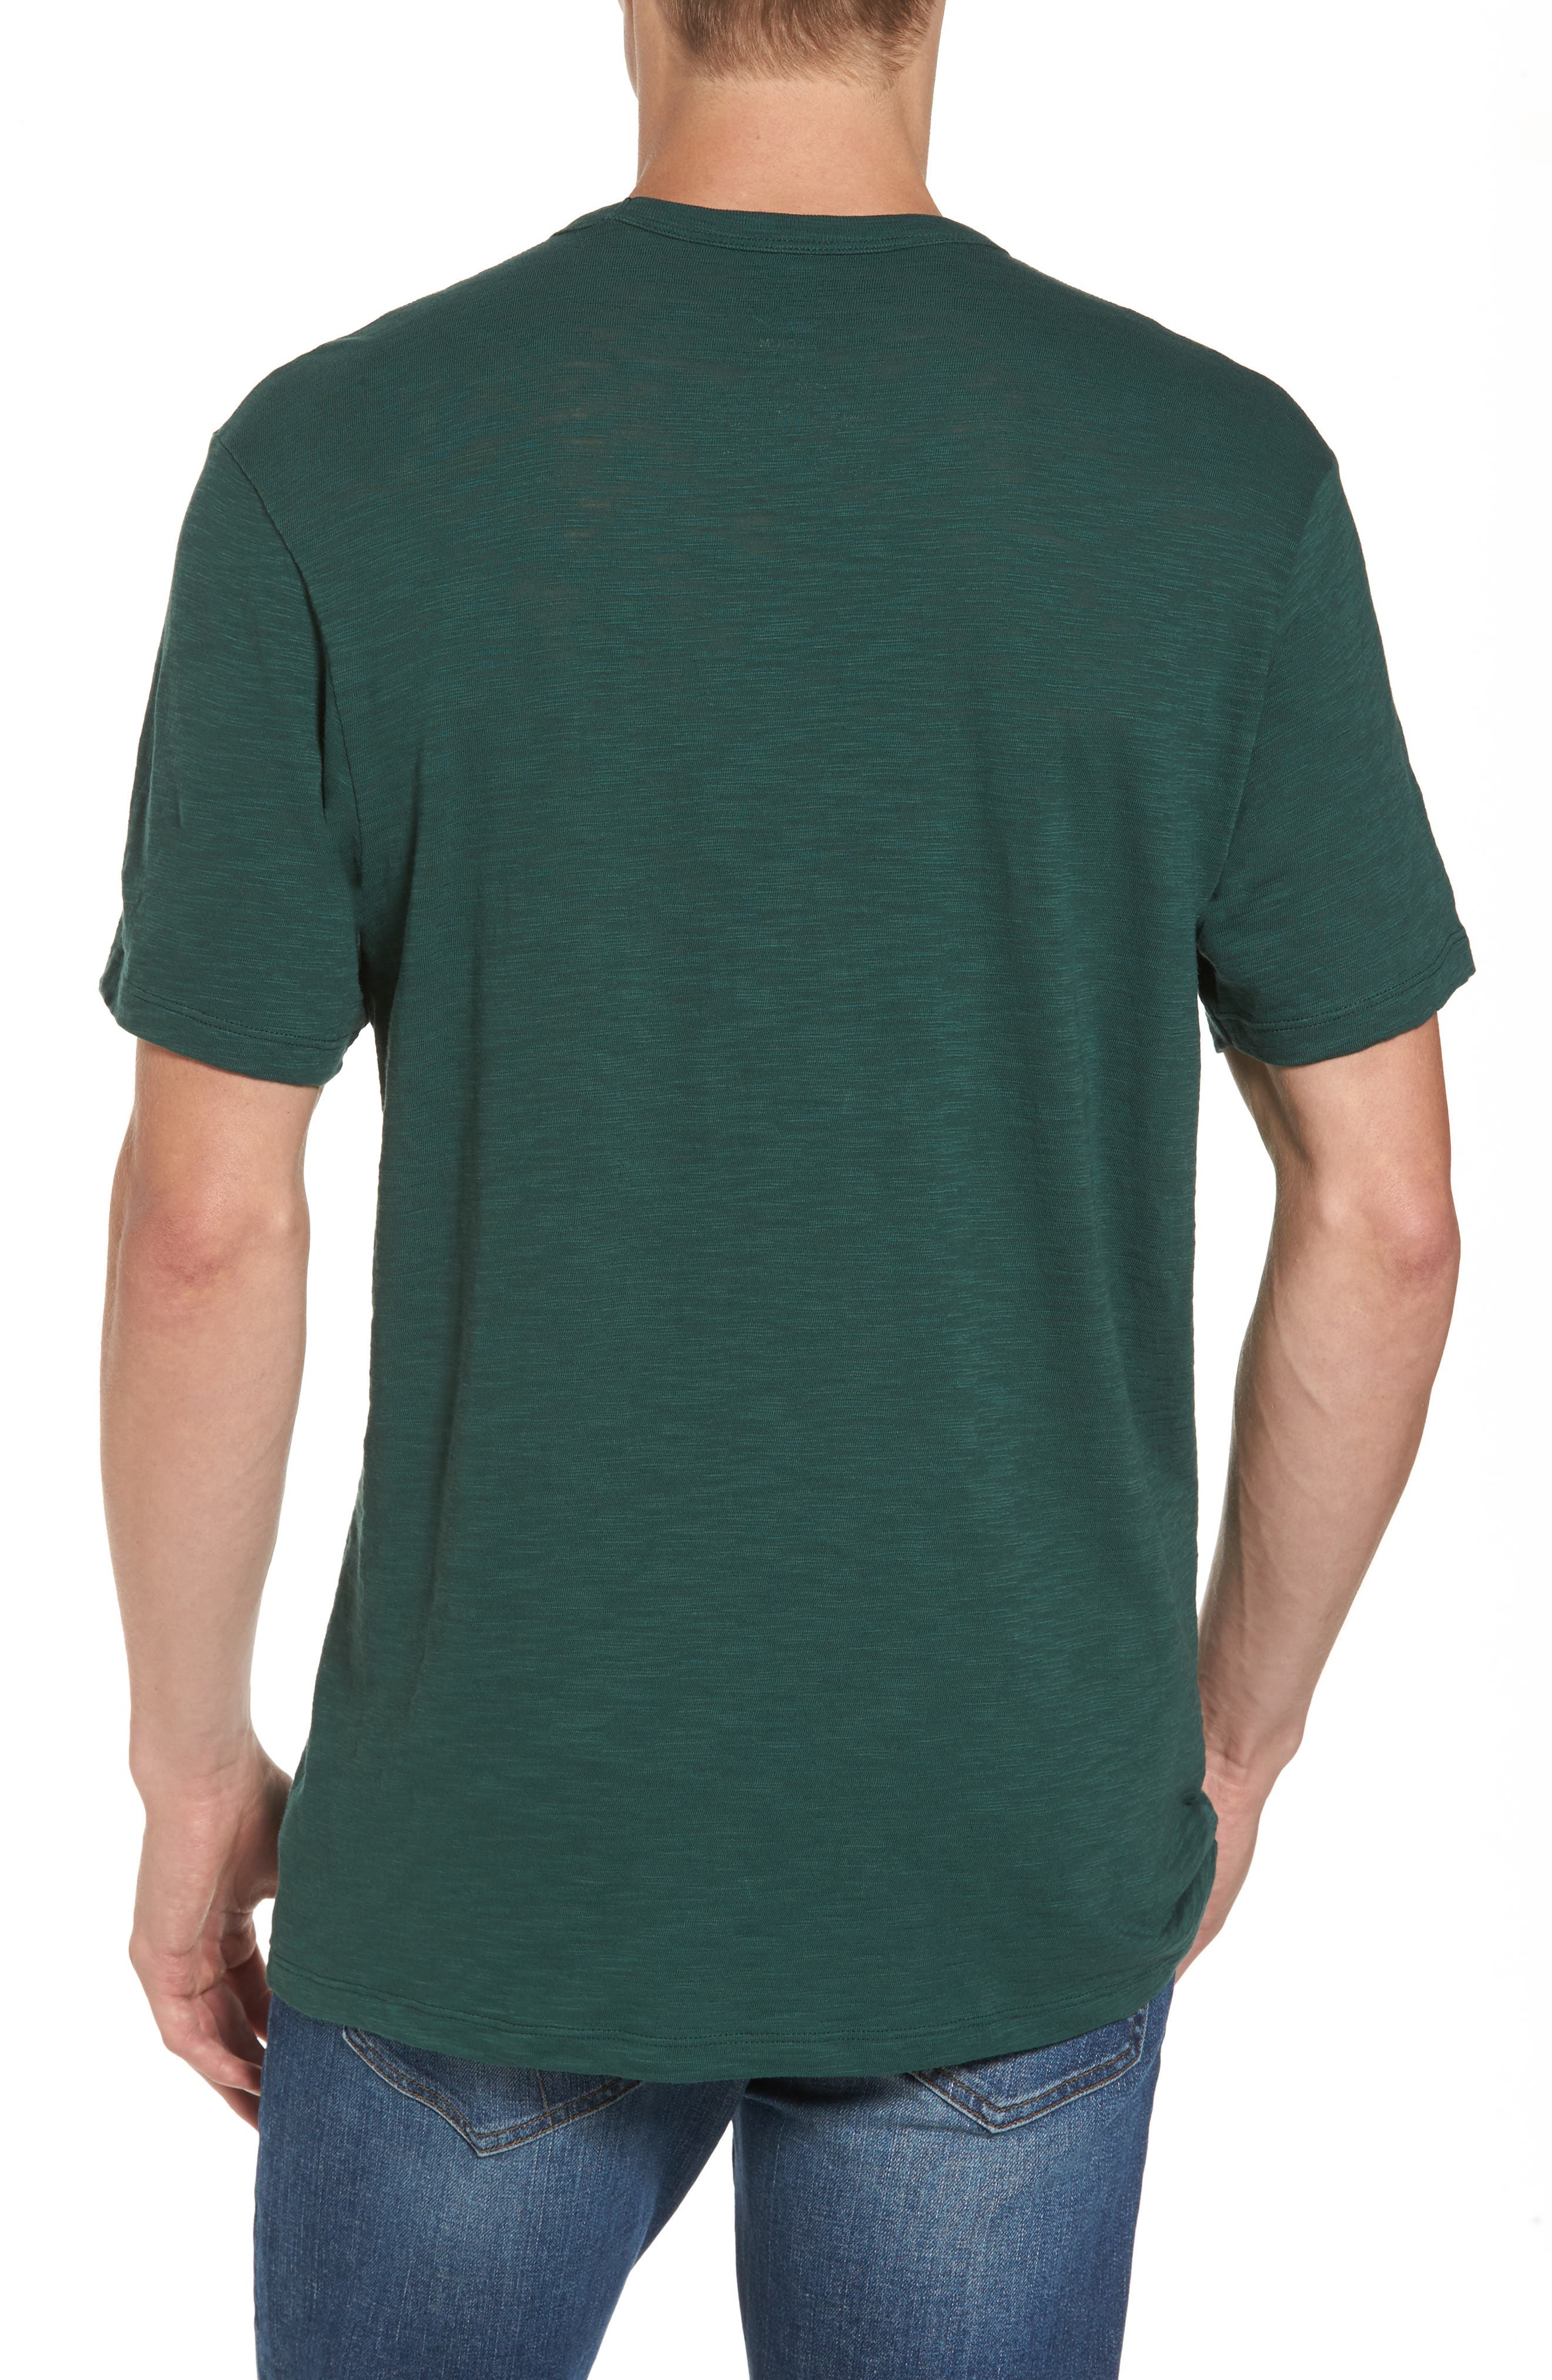 Alternate Image 2  - '47 Green Bay Packers T-Shirt